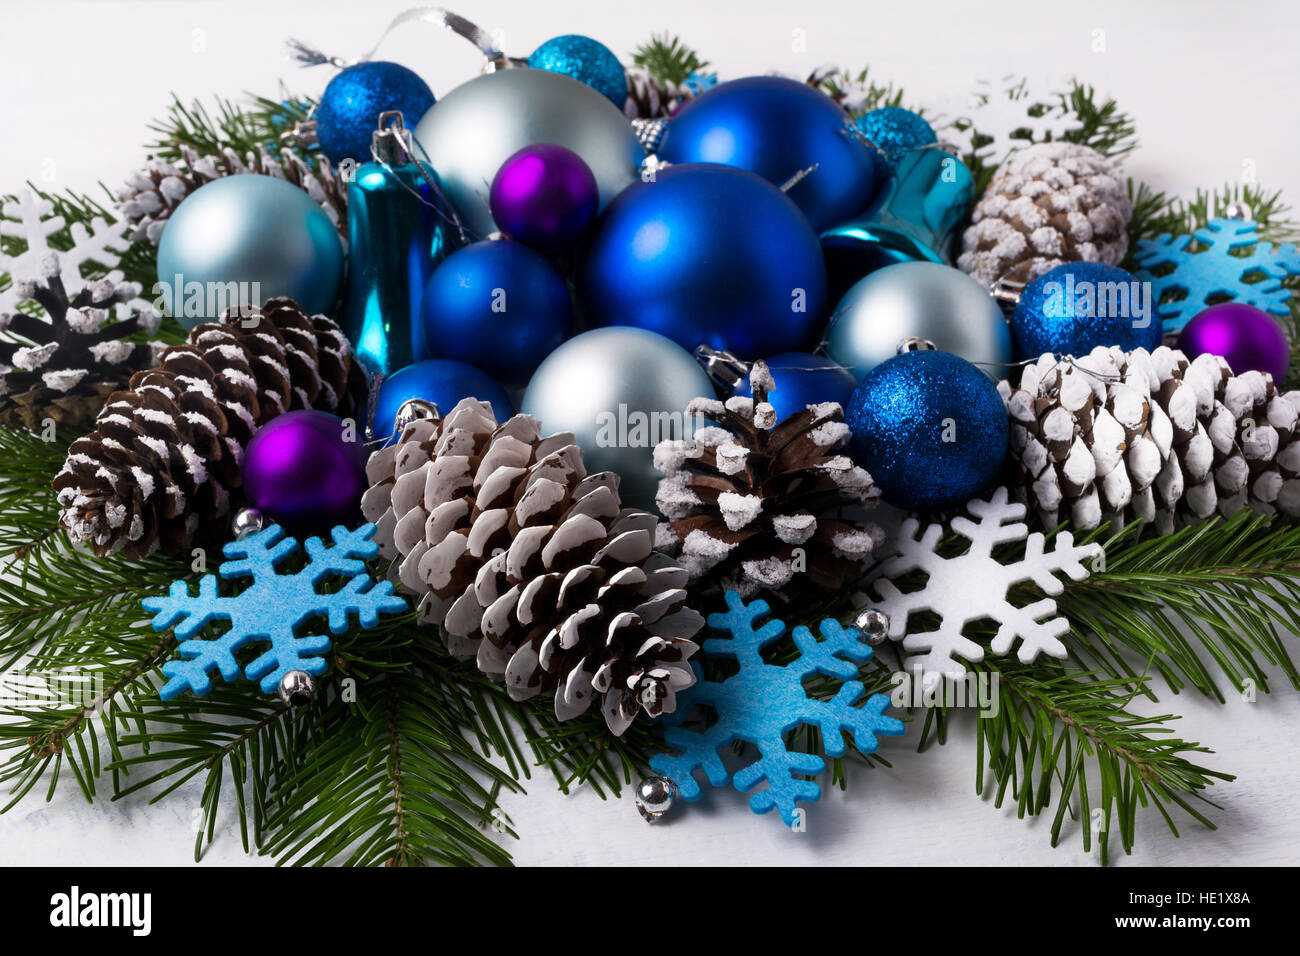 Christmas Decoration With Purple And Blue Color Shades Ornaments Greeting Background Balls Fir Branches Felt Snowflakes